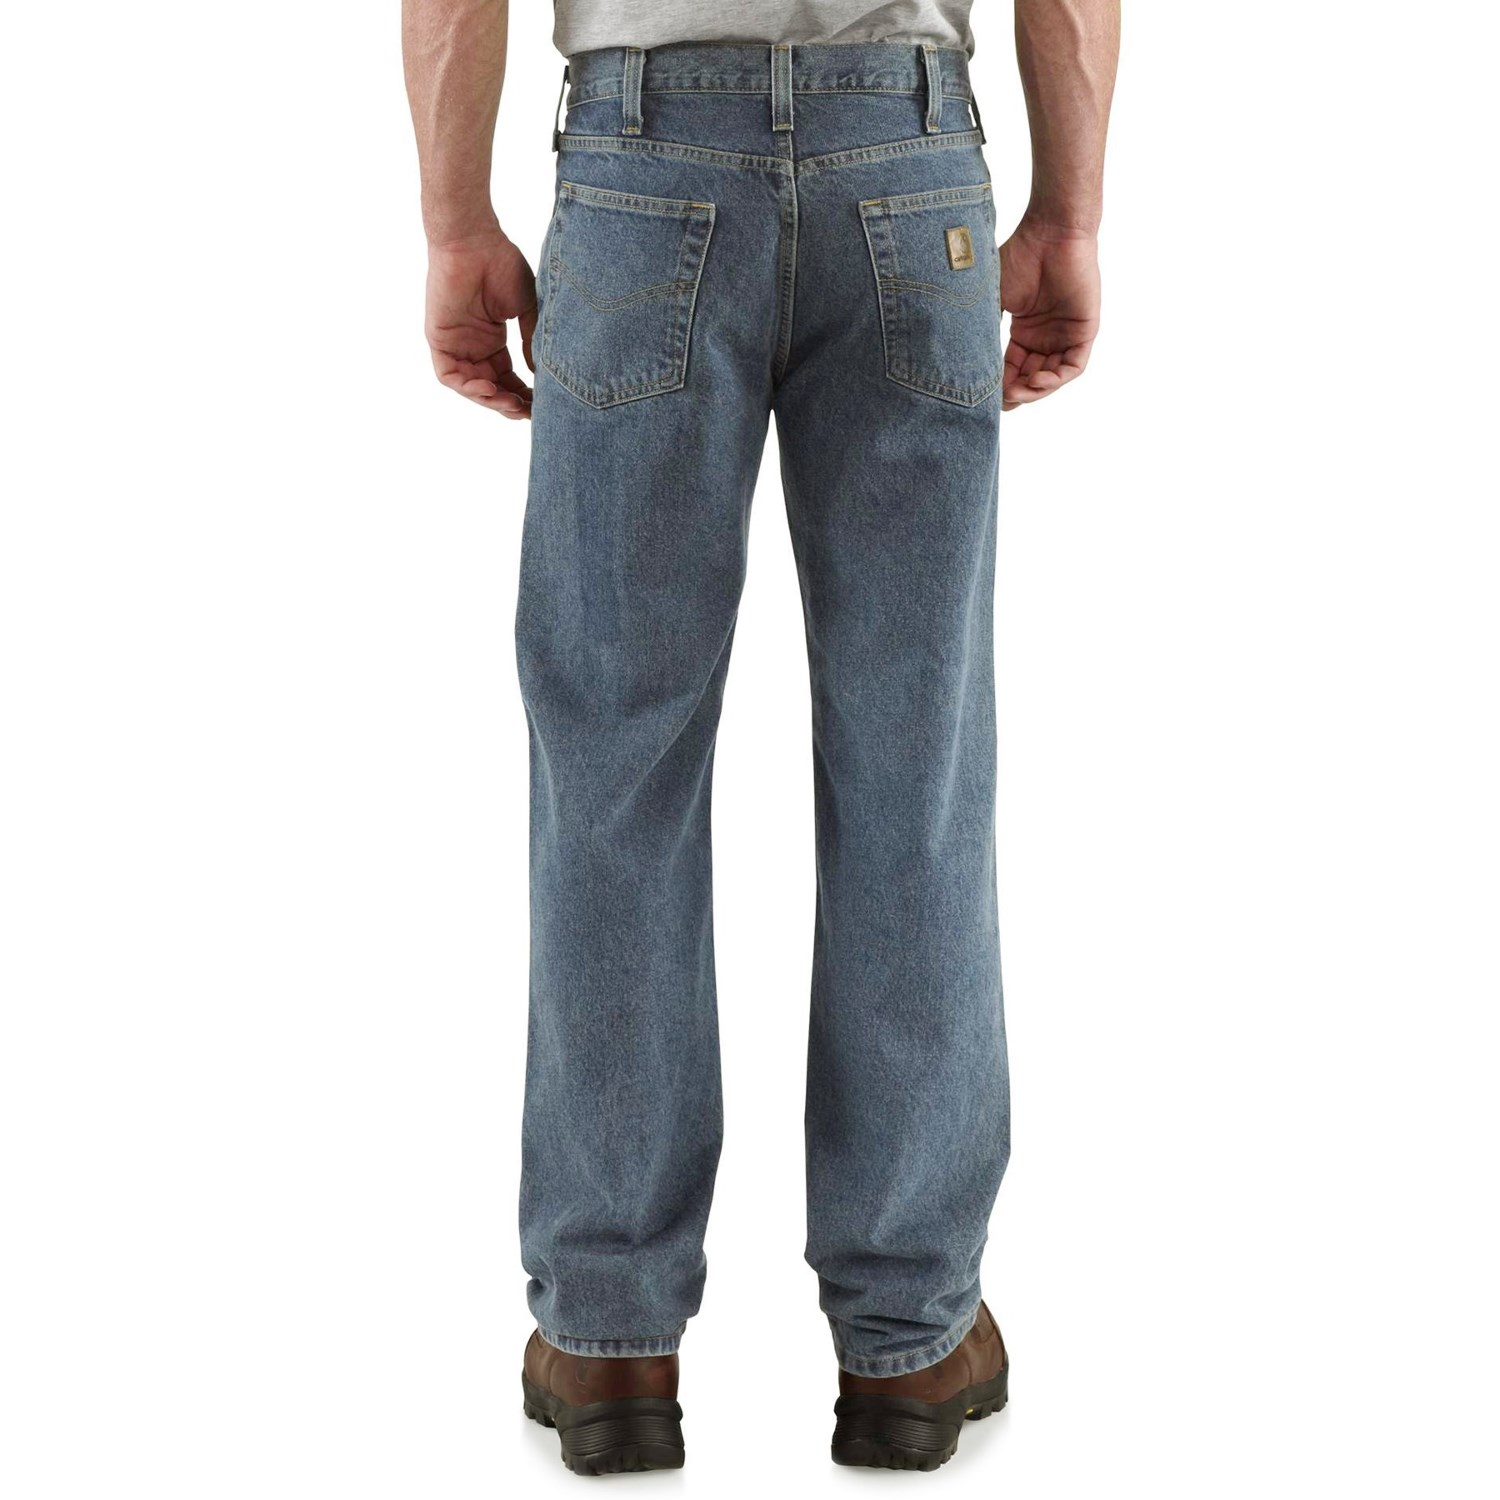 b8a192648afcb Carhartt B460 Work Jeans - Relaxed Fit, Straight Leg, Factory Seconds (For  Men)